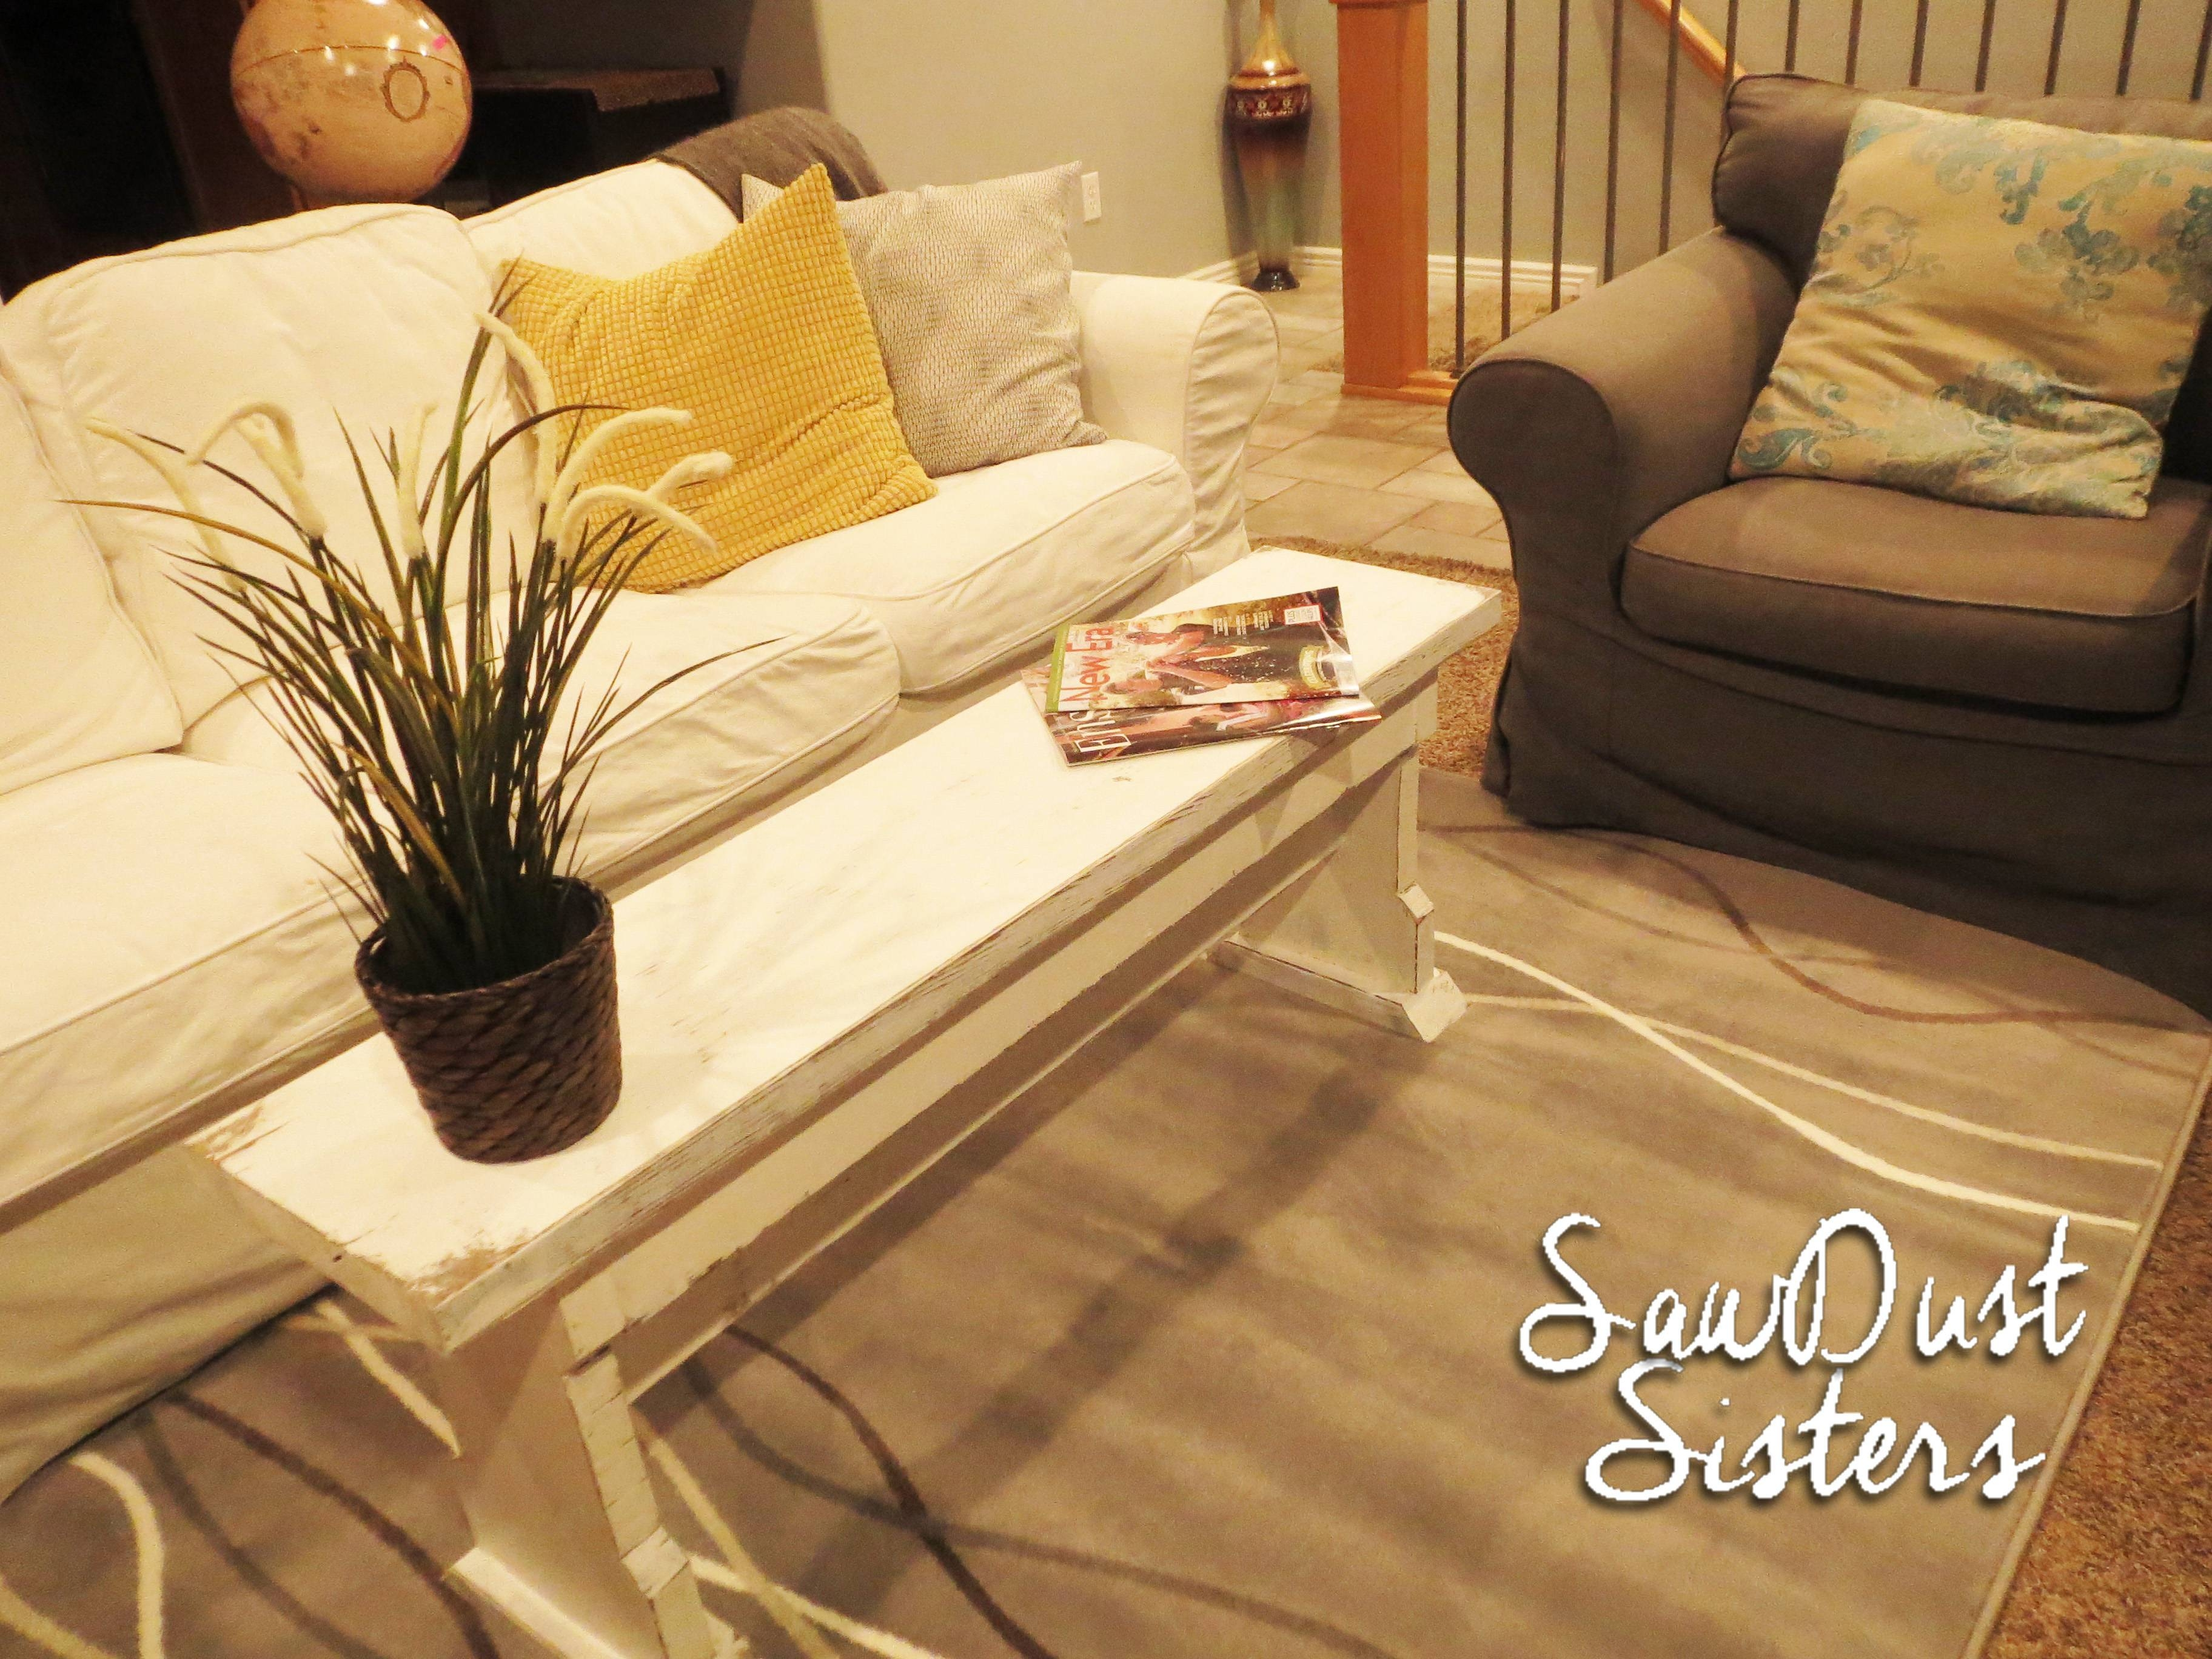 Diy Narrow Coffee Table Or Country Bench Tutorial - Sawdust Sisters inside Narrow Coffee Tables (Image 8 of 30)